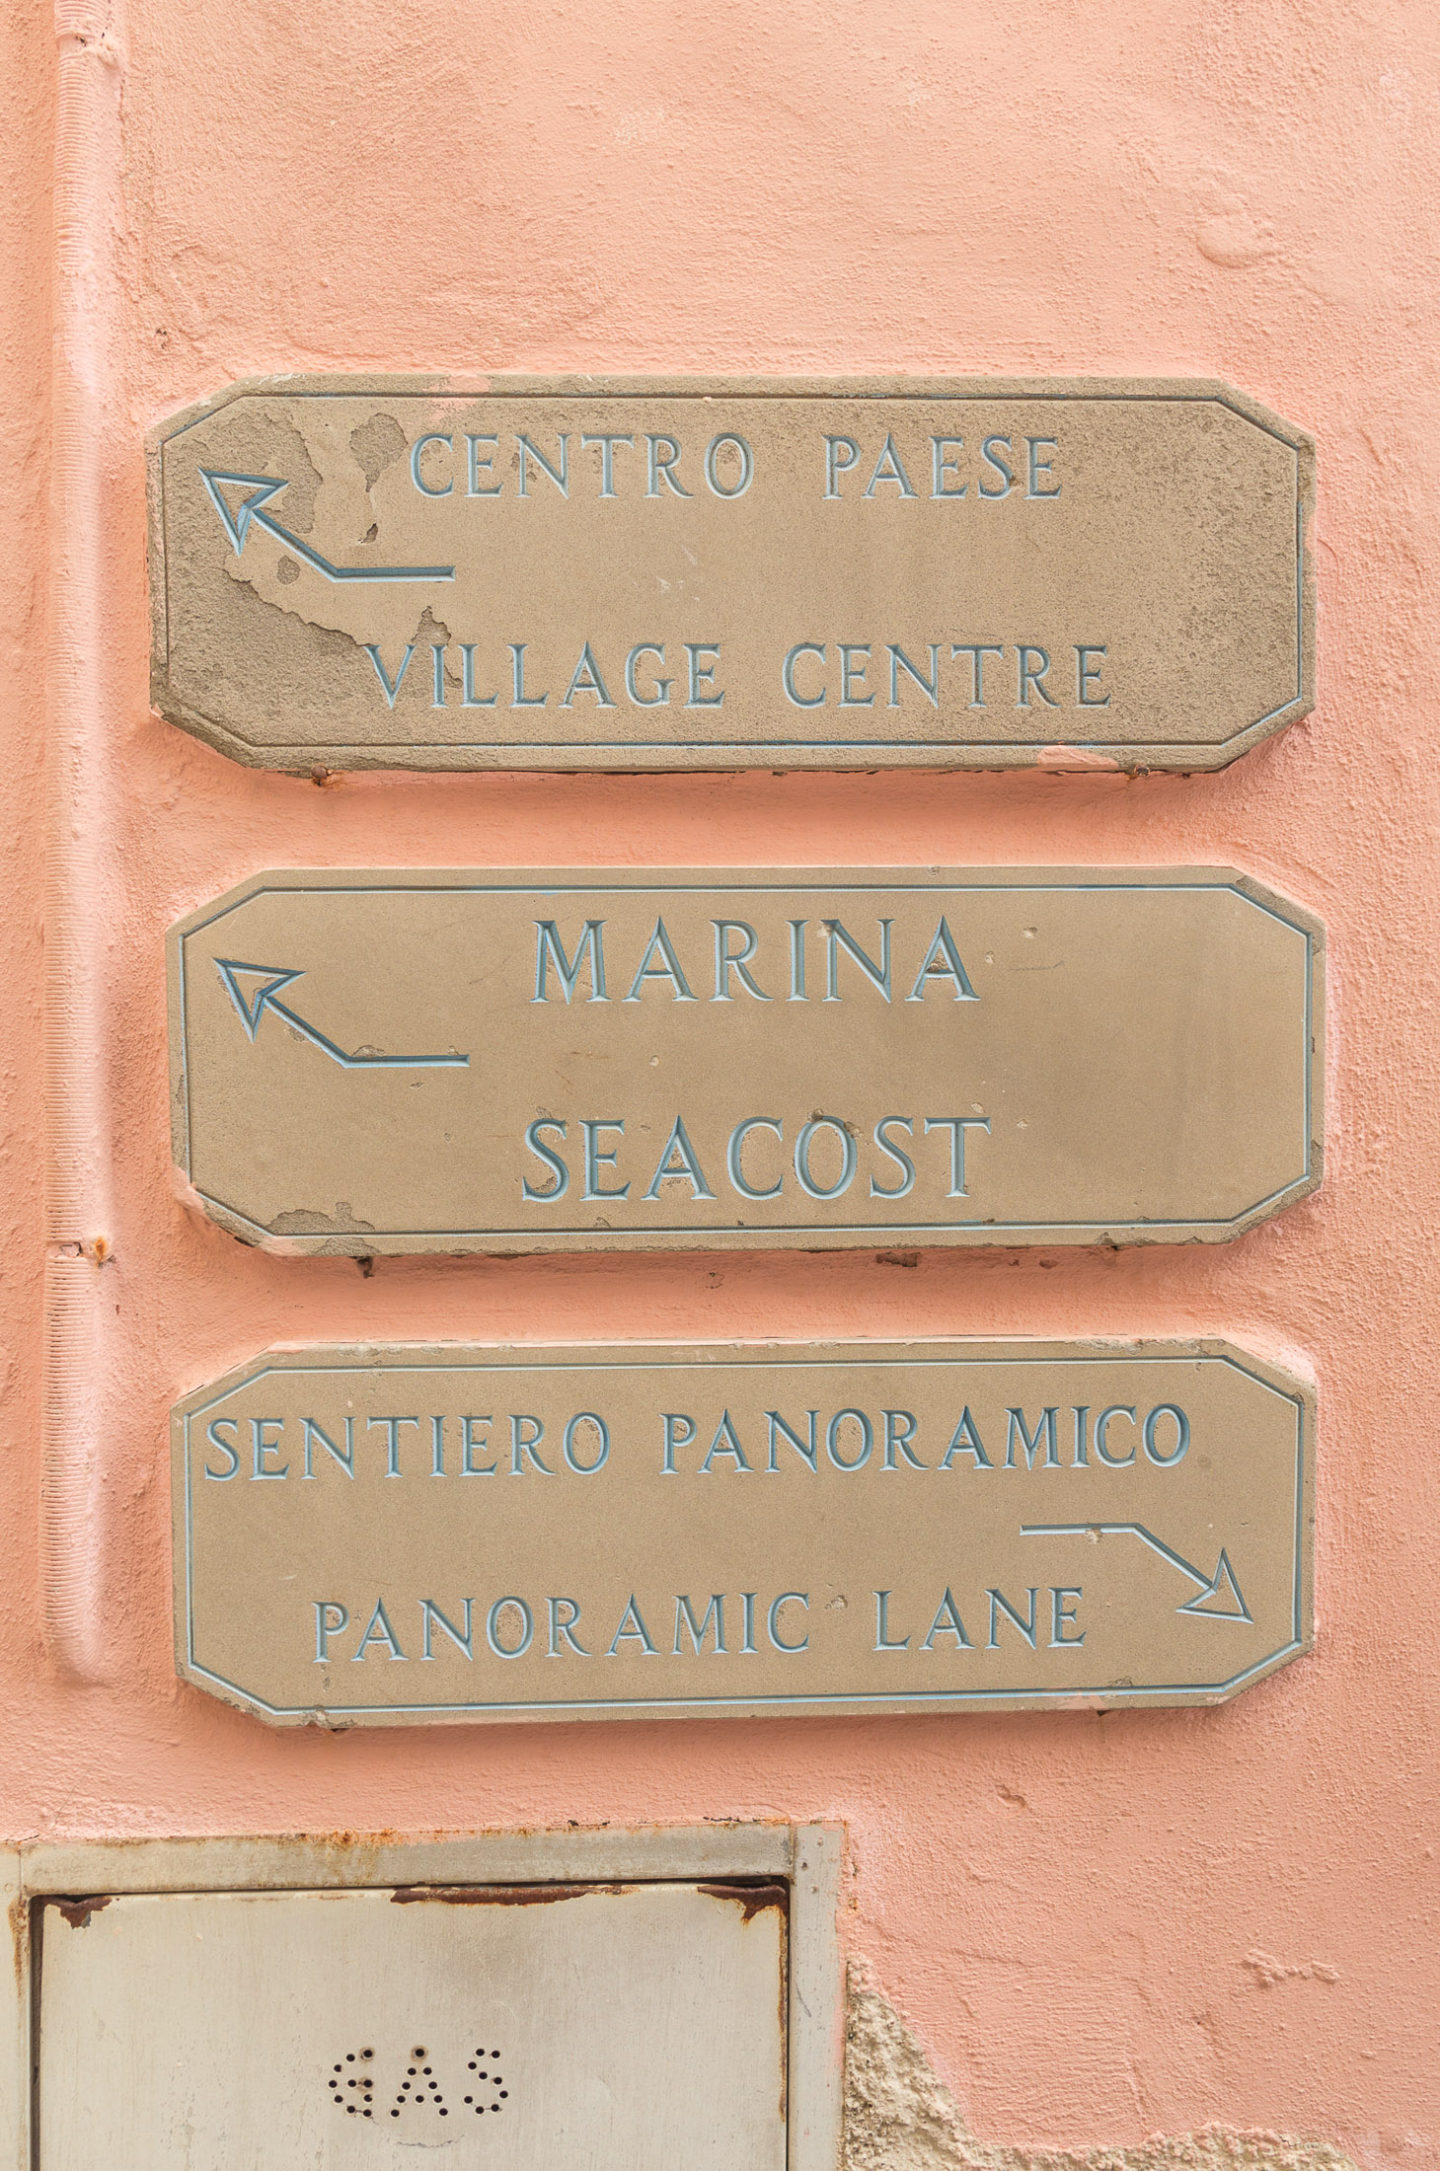 "3 signs giving directions on an orange wall - top one says ""Centro passe, Village Centre"", middle - ""Marina, Sea Coast"", and bottom - ""Sentiero Panoramic, Panoramic Lane"""